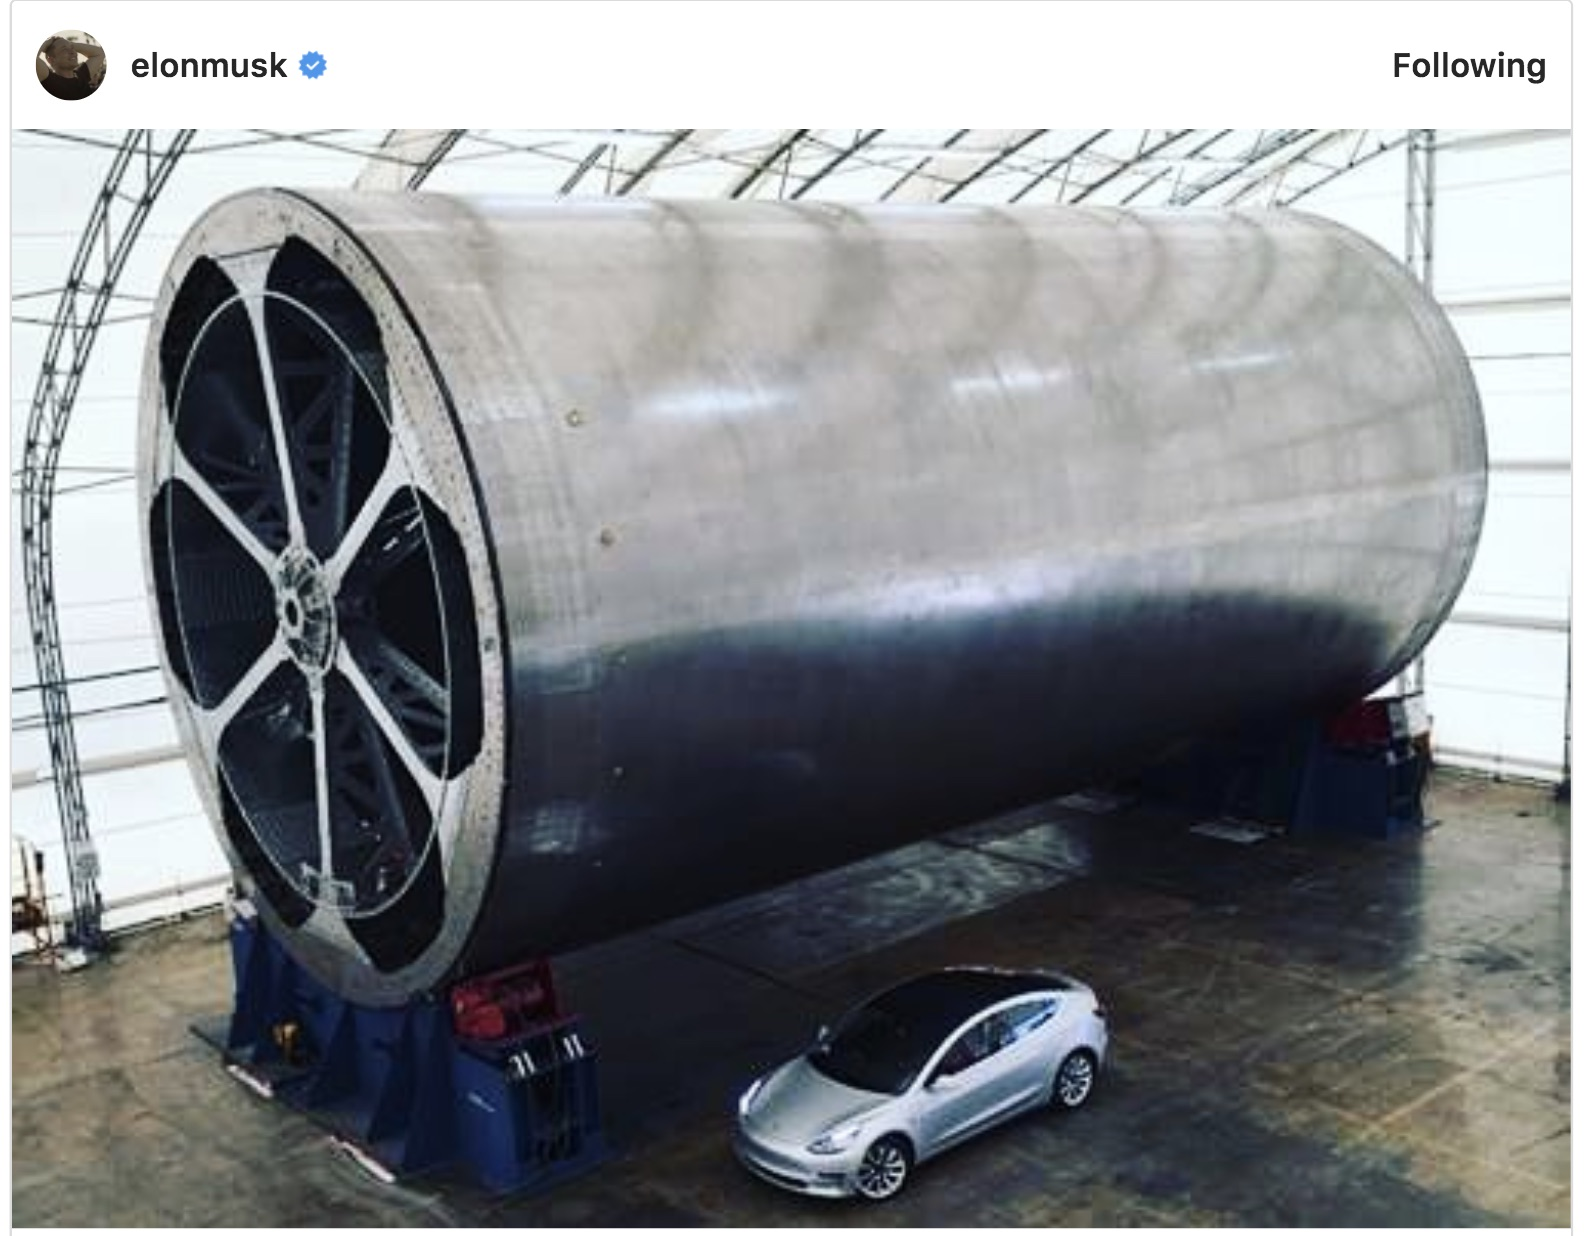 spacex-bfr-body-tool-tesla-model-3